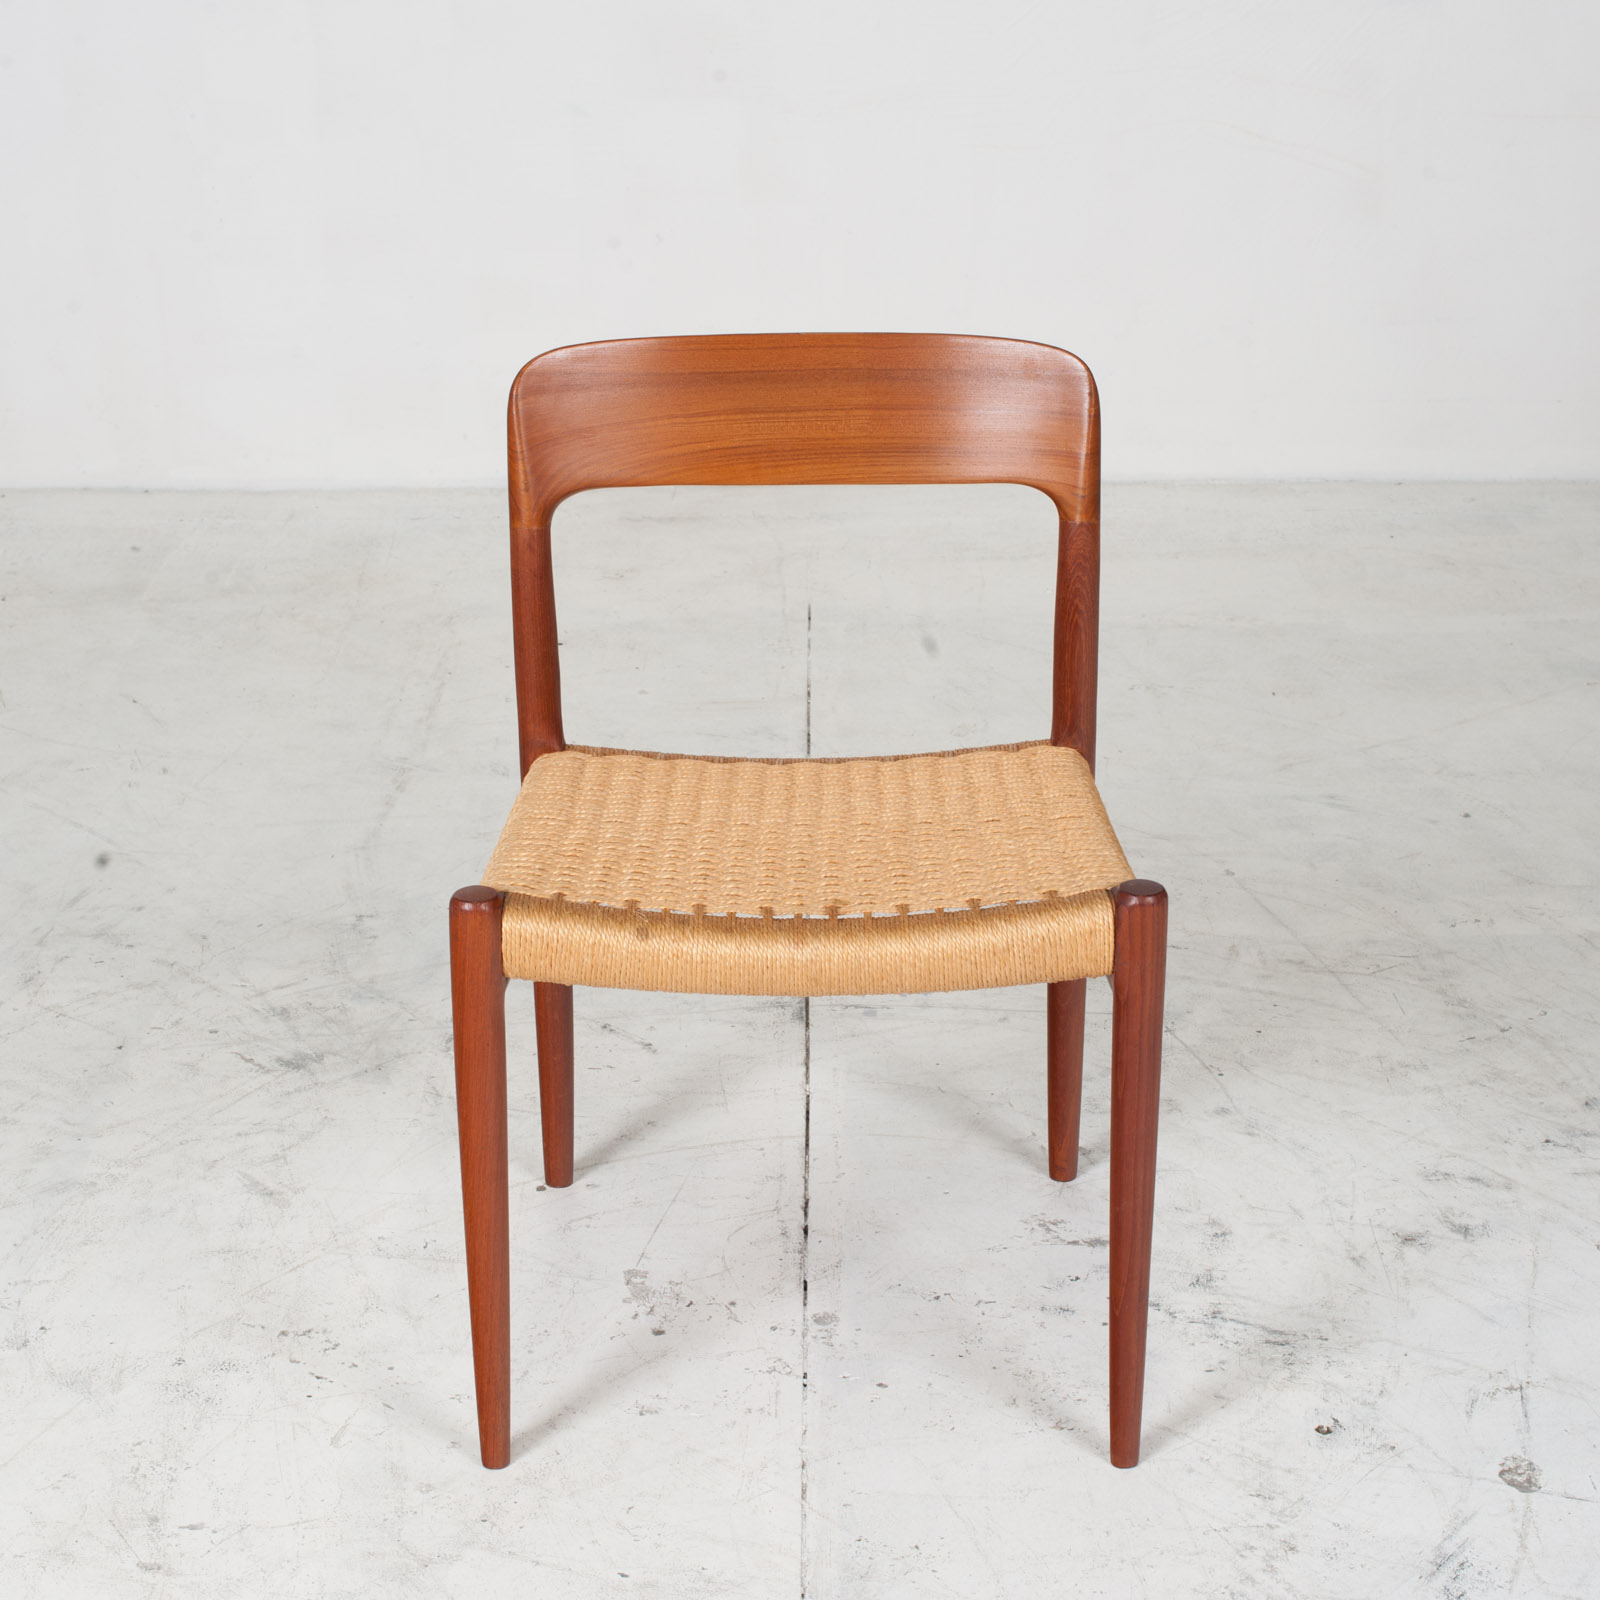 Set Of 6 Model 75 Dining Chairs By J. L. Moller In Teak And Cord 1960s Denmark 03